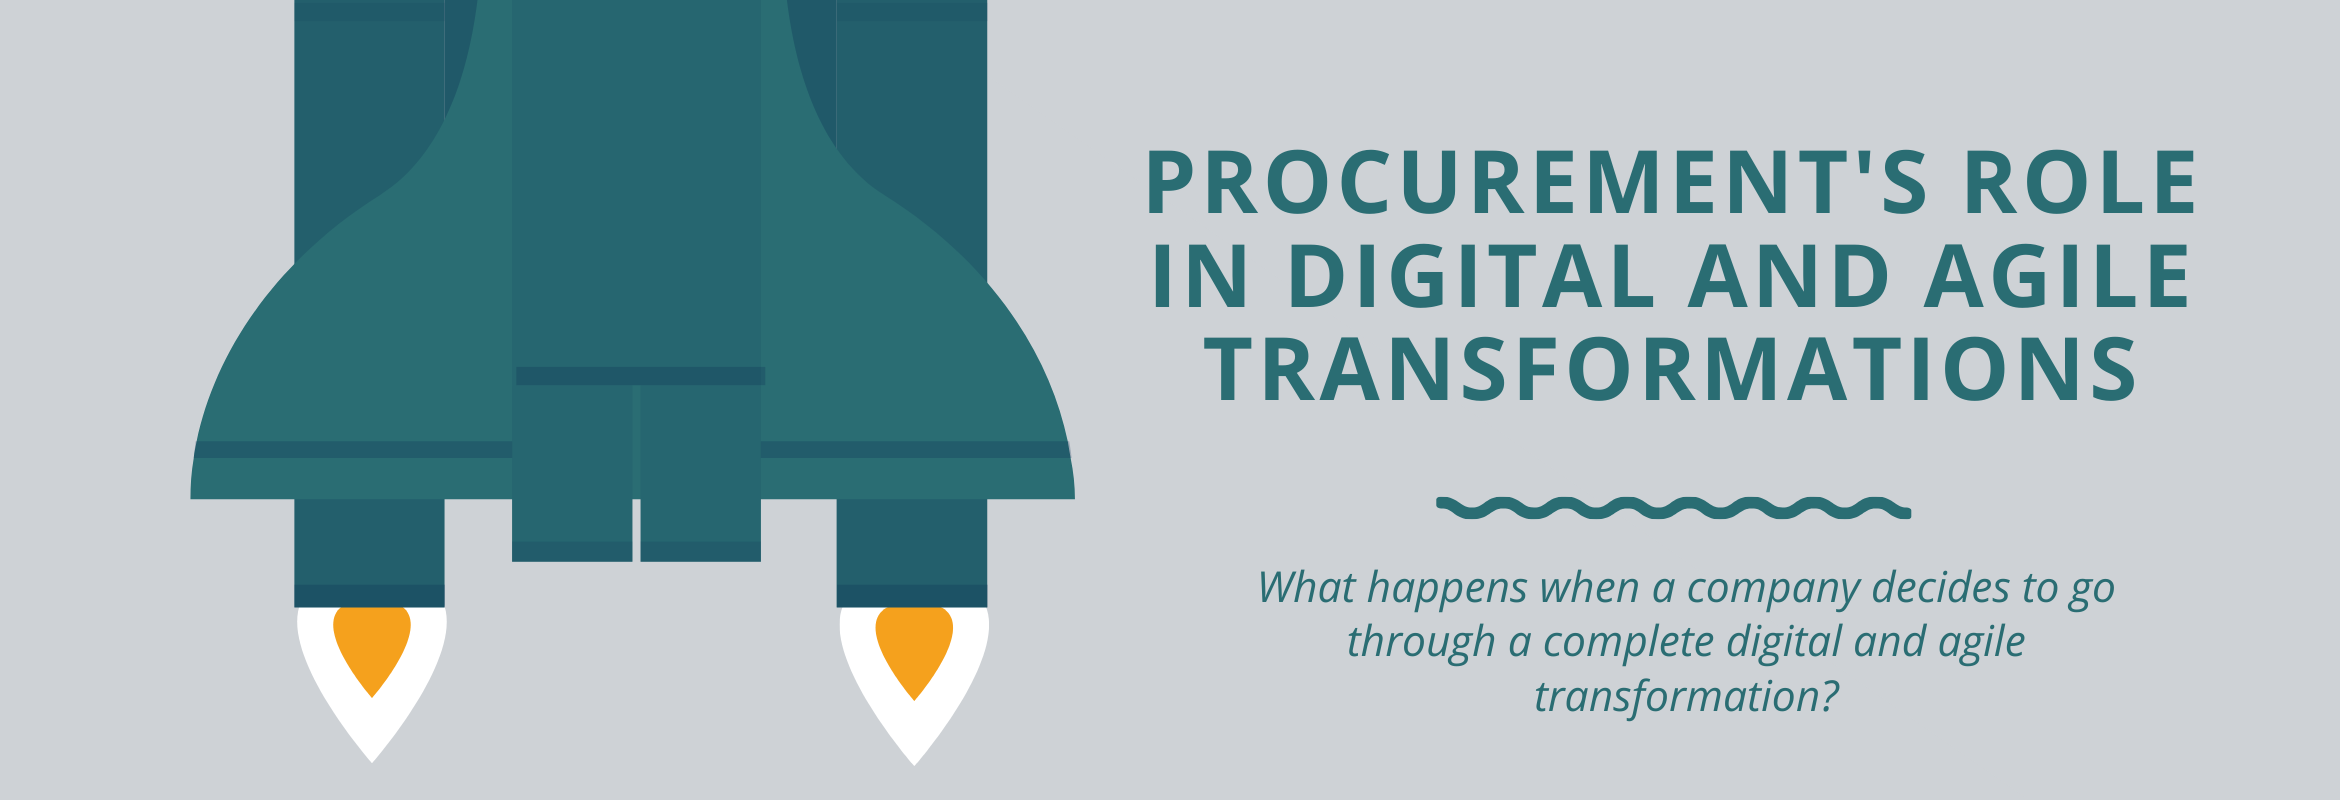 Procurement digital and agile transformation